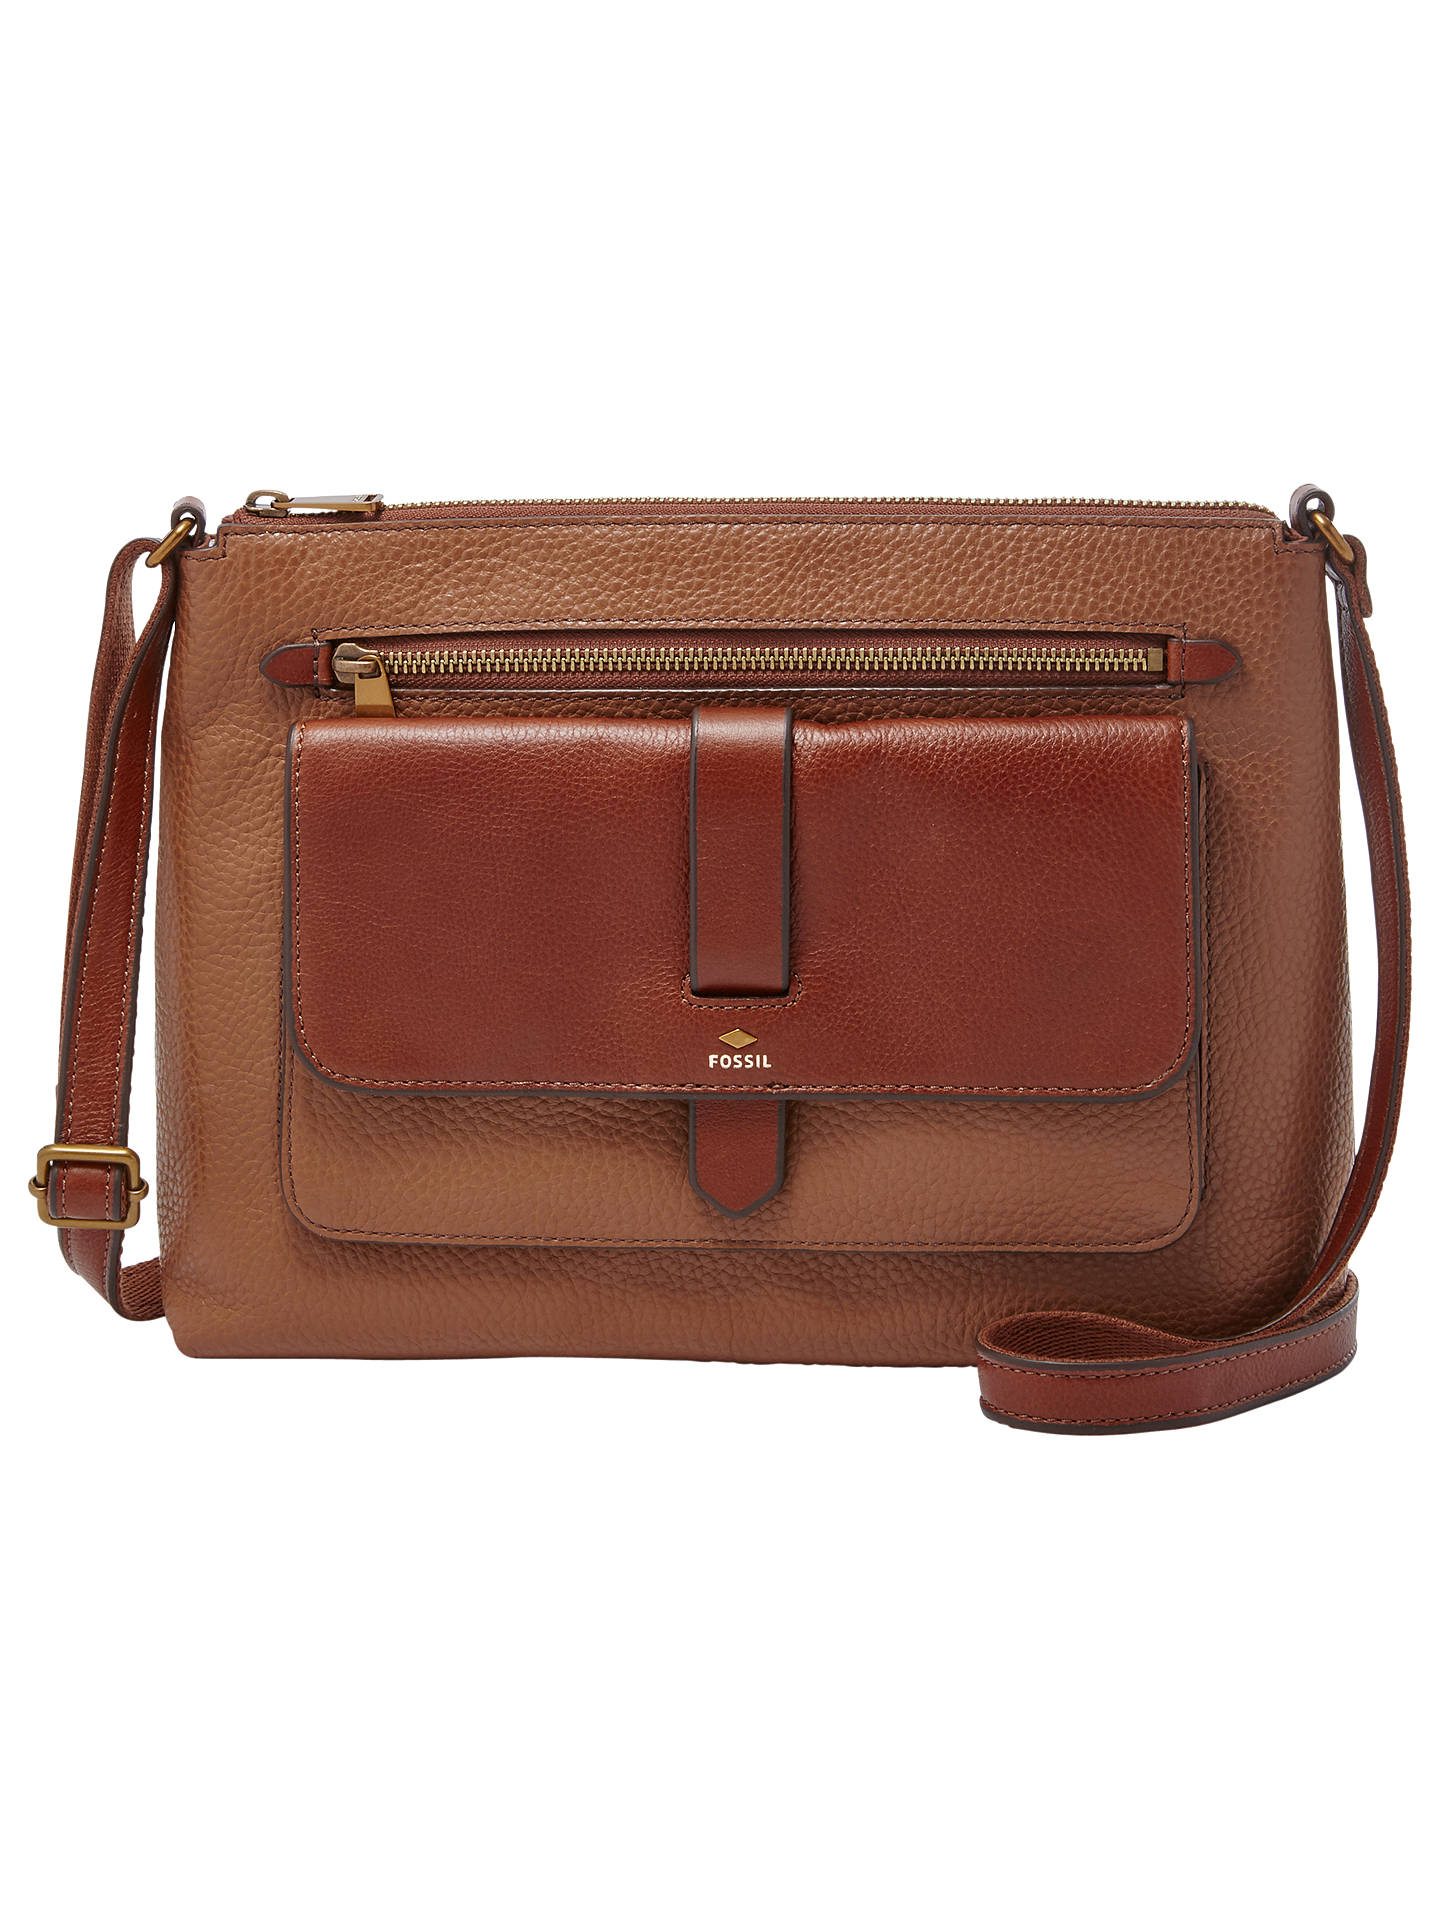 1f8d9efccf3c0a Buy Fossil Kinley Leather Medium Cross Body Bag, Brown Online at  johnlewis.com ...